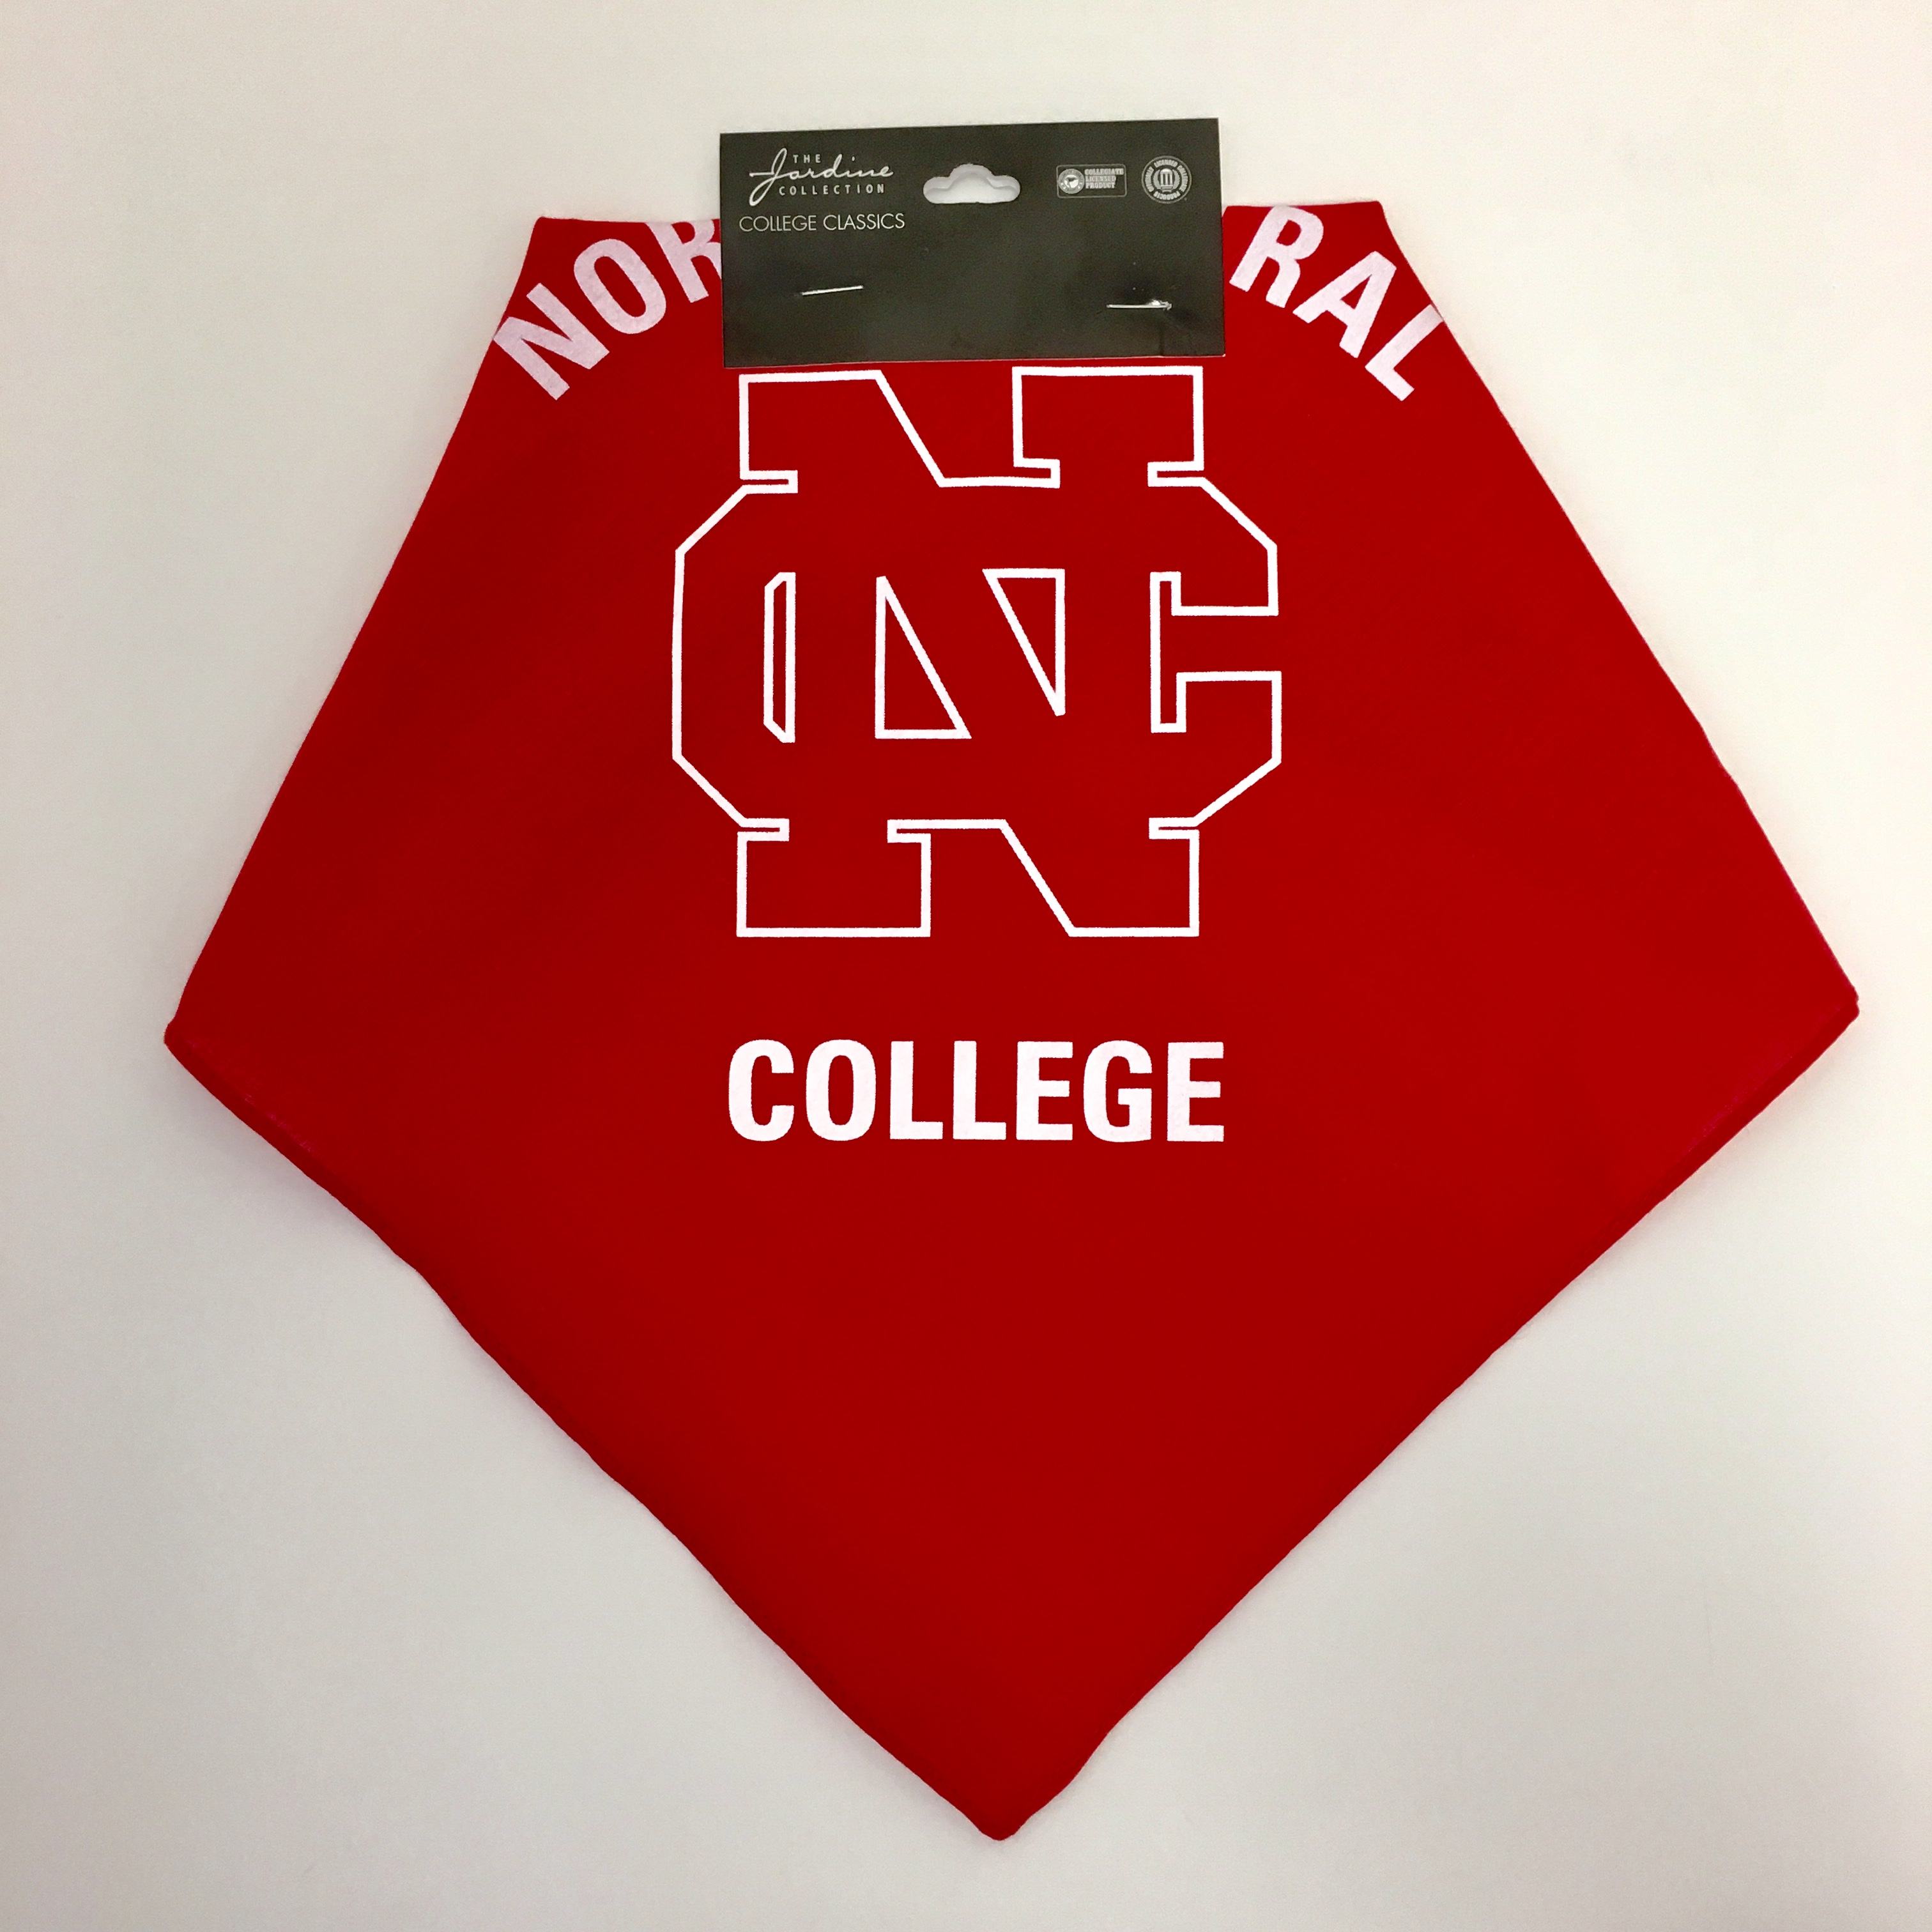 Image for the North Central College Bandanna product